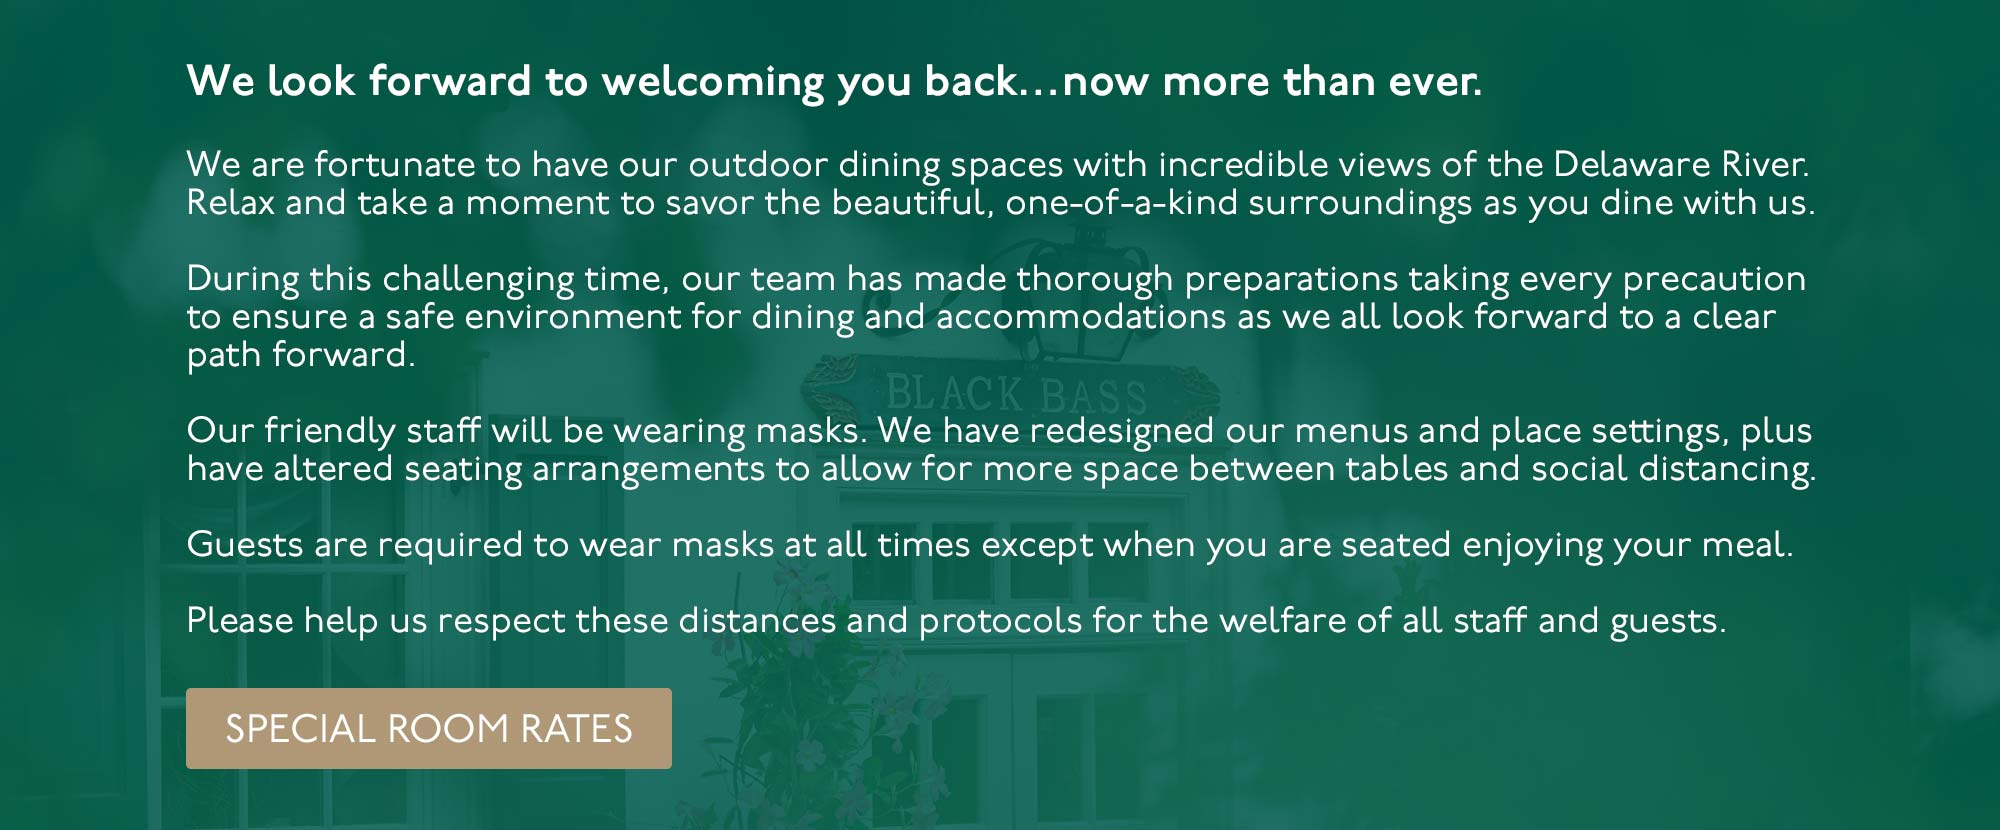 We look forward to welcoming you back to the Black Bass hotel. View our menus.